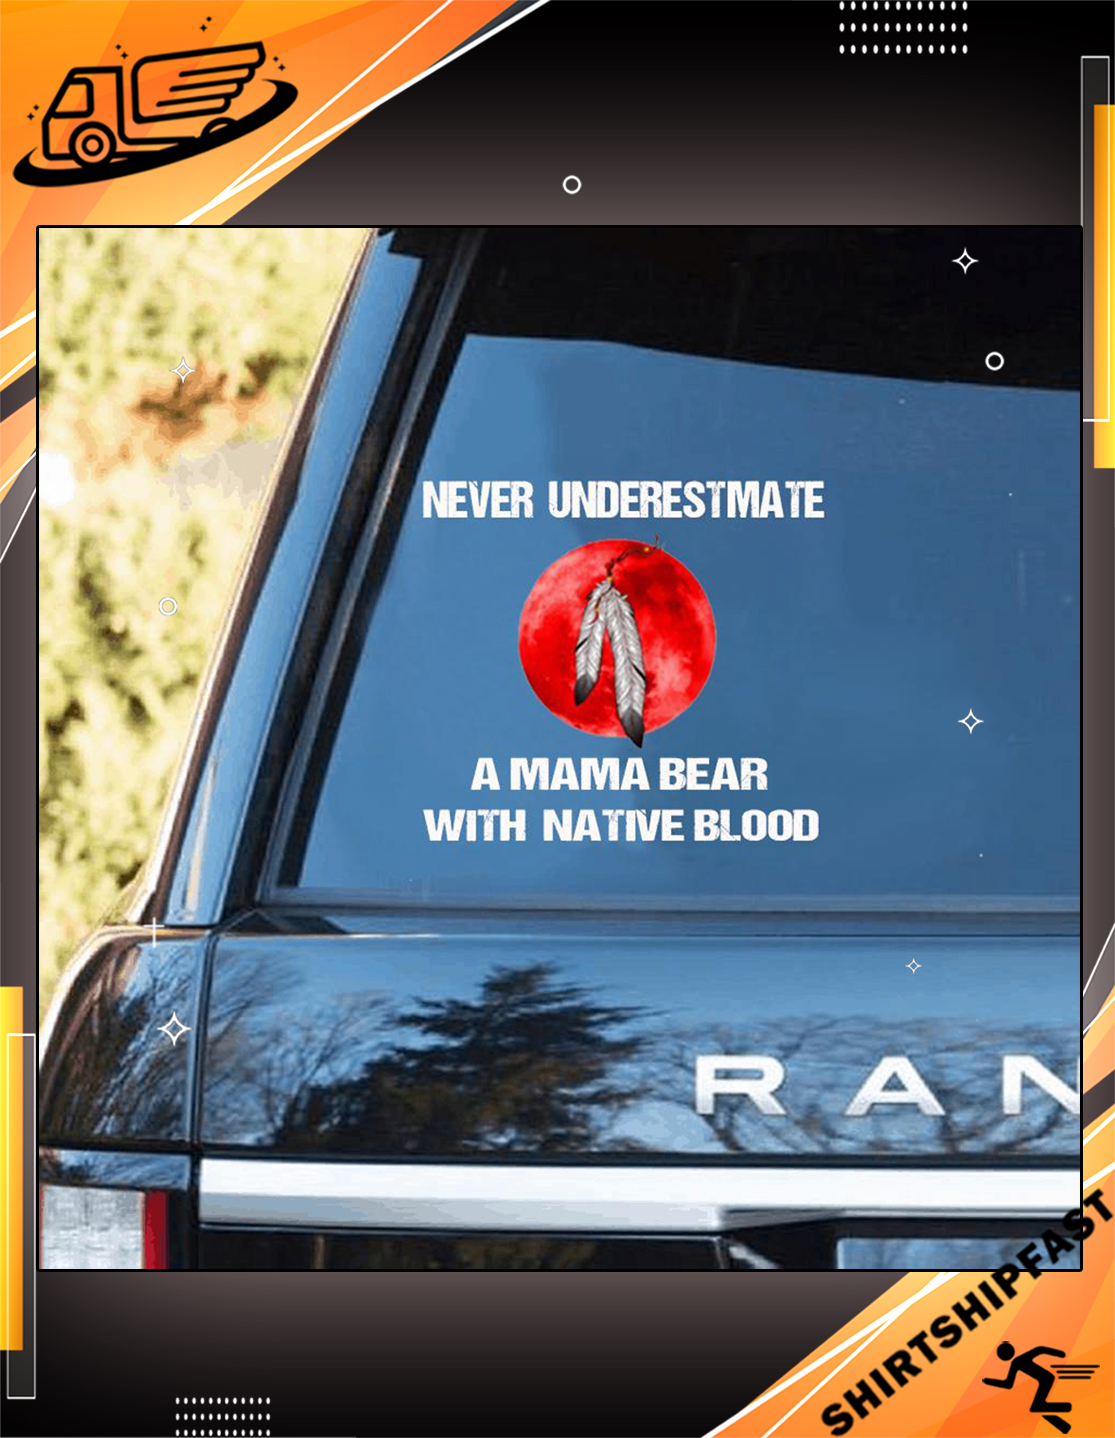 Native American Never underestimate a mama bear with native blood car sticker - Picture 3